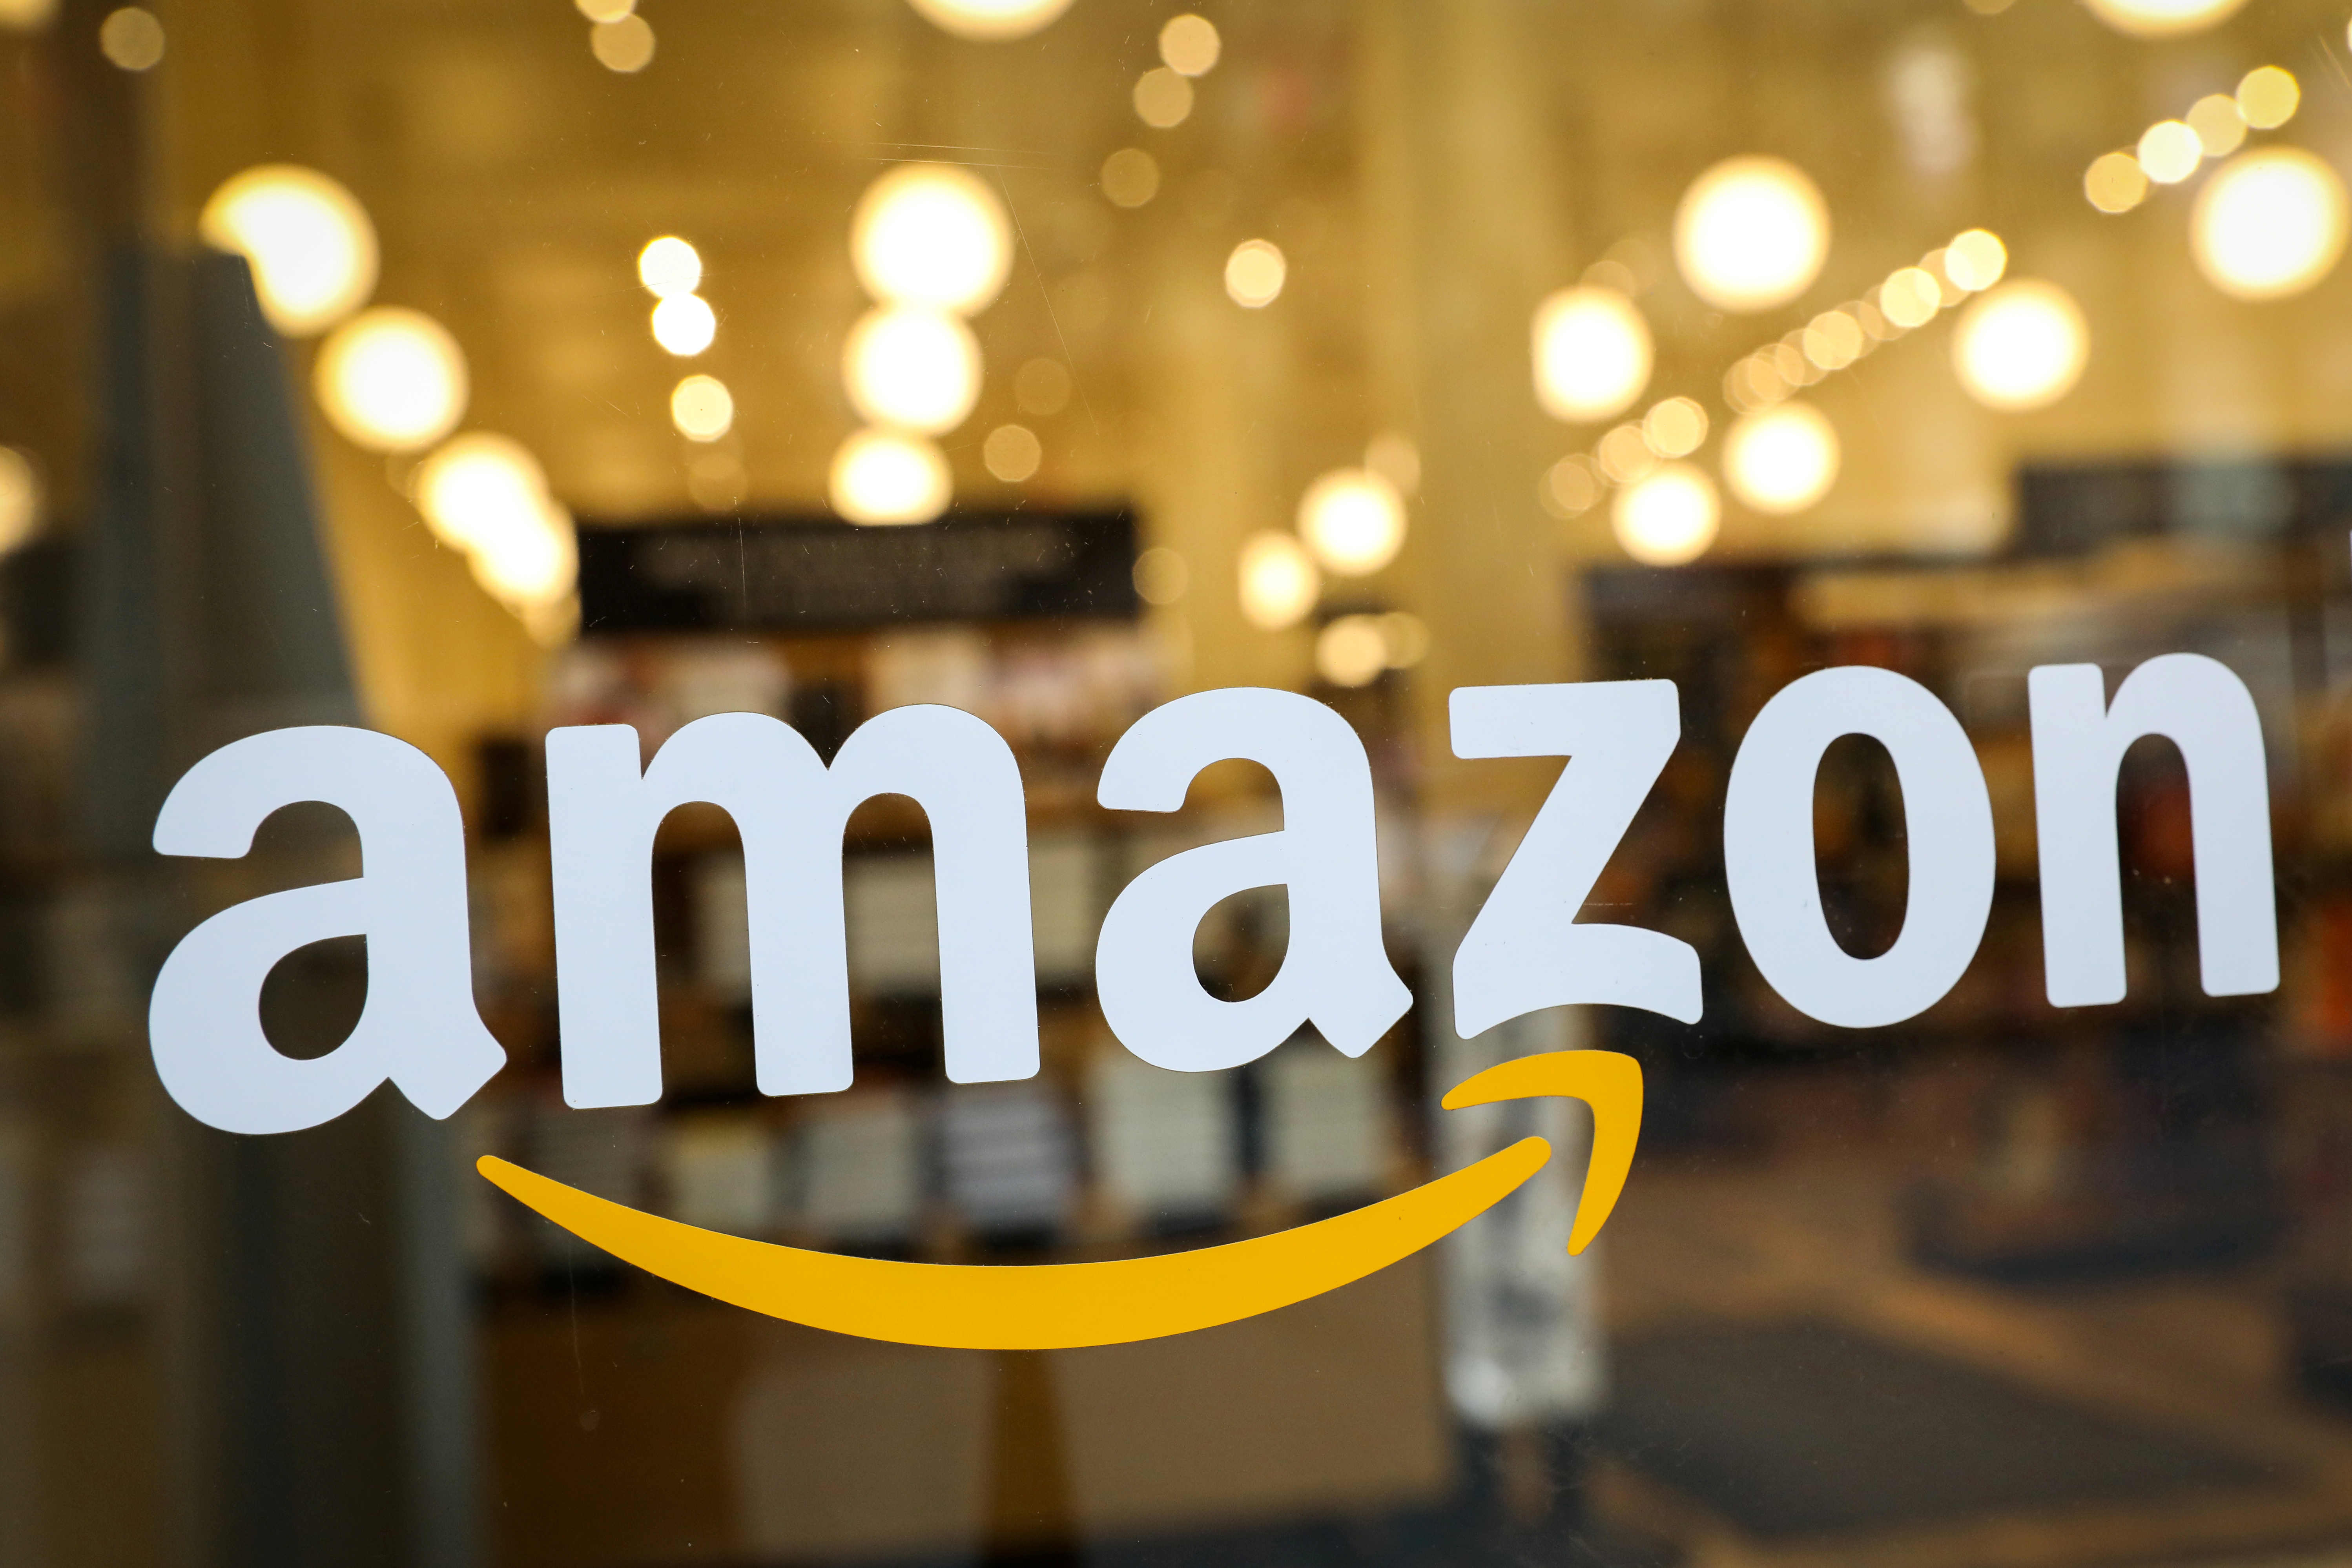 The logo of Amazon is seen on the door of an Amazon Books retail store in New York City, U.S., February 14, 2019. REUTERS/Brendan McDermid/File Photo